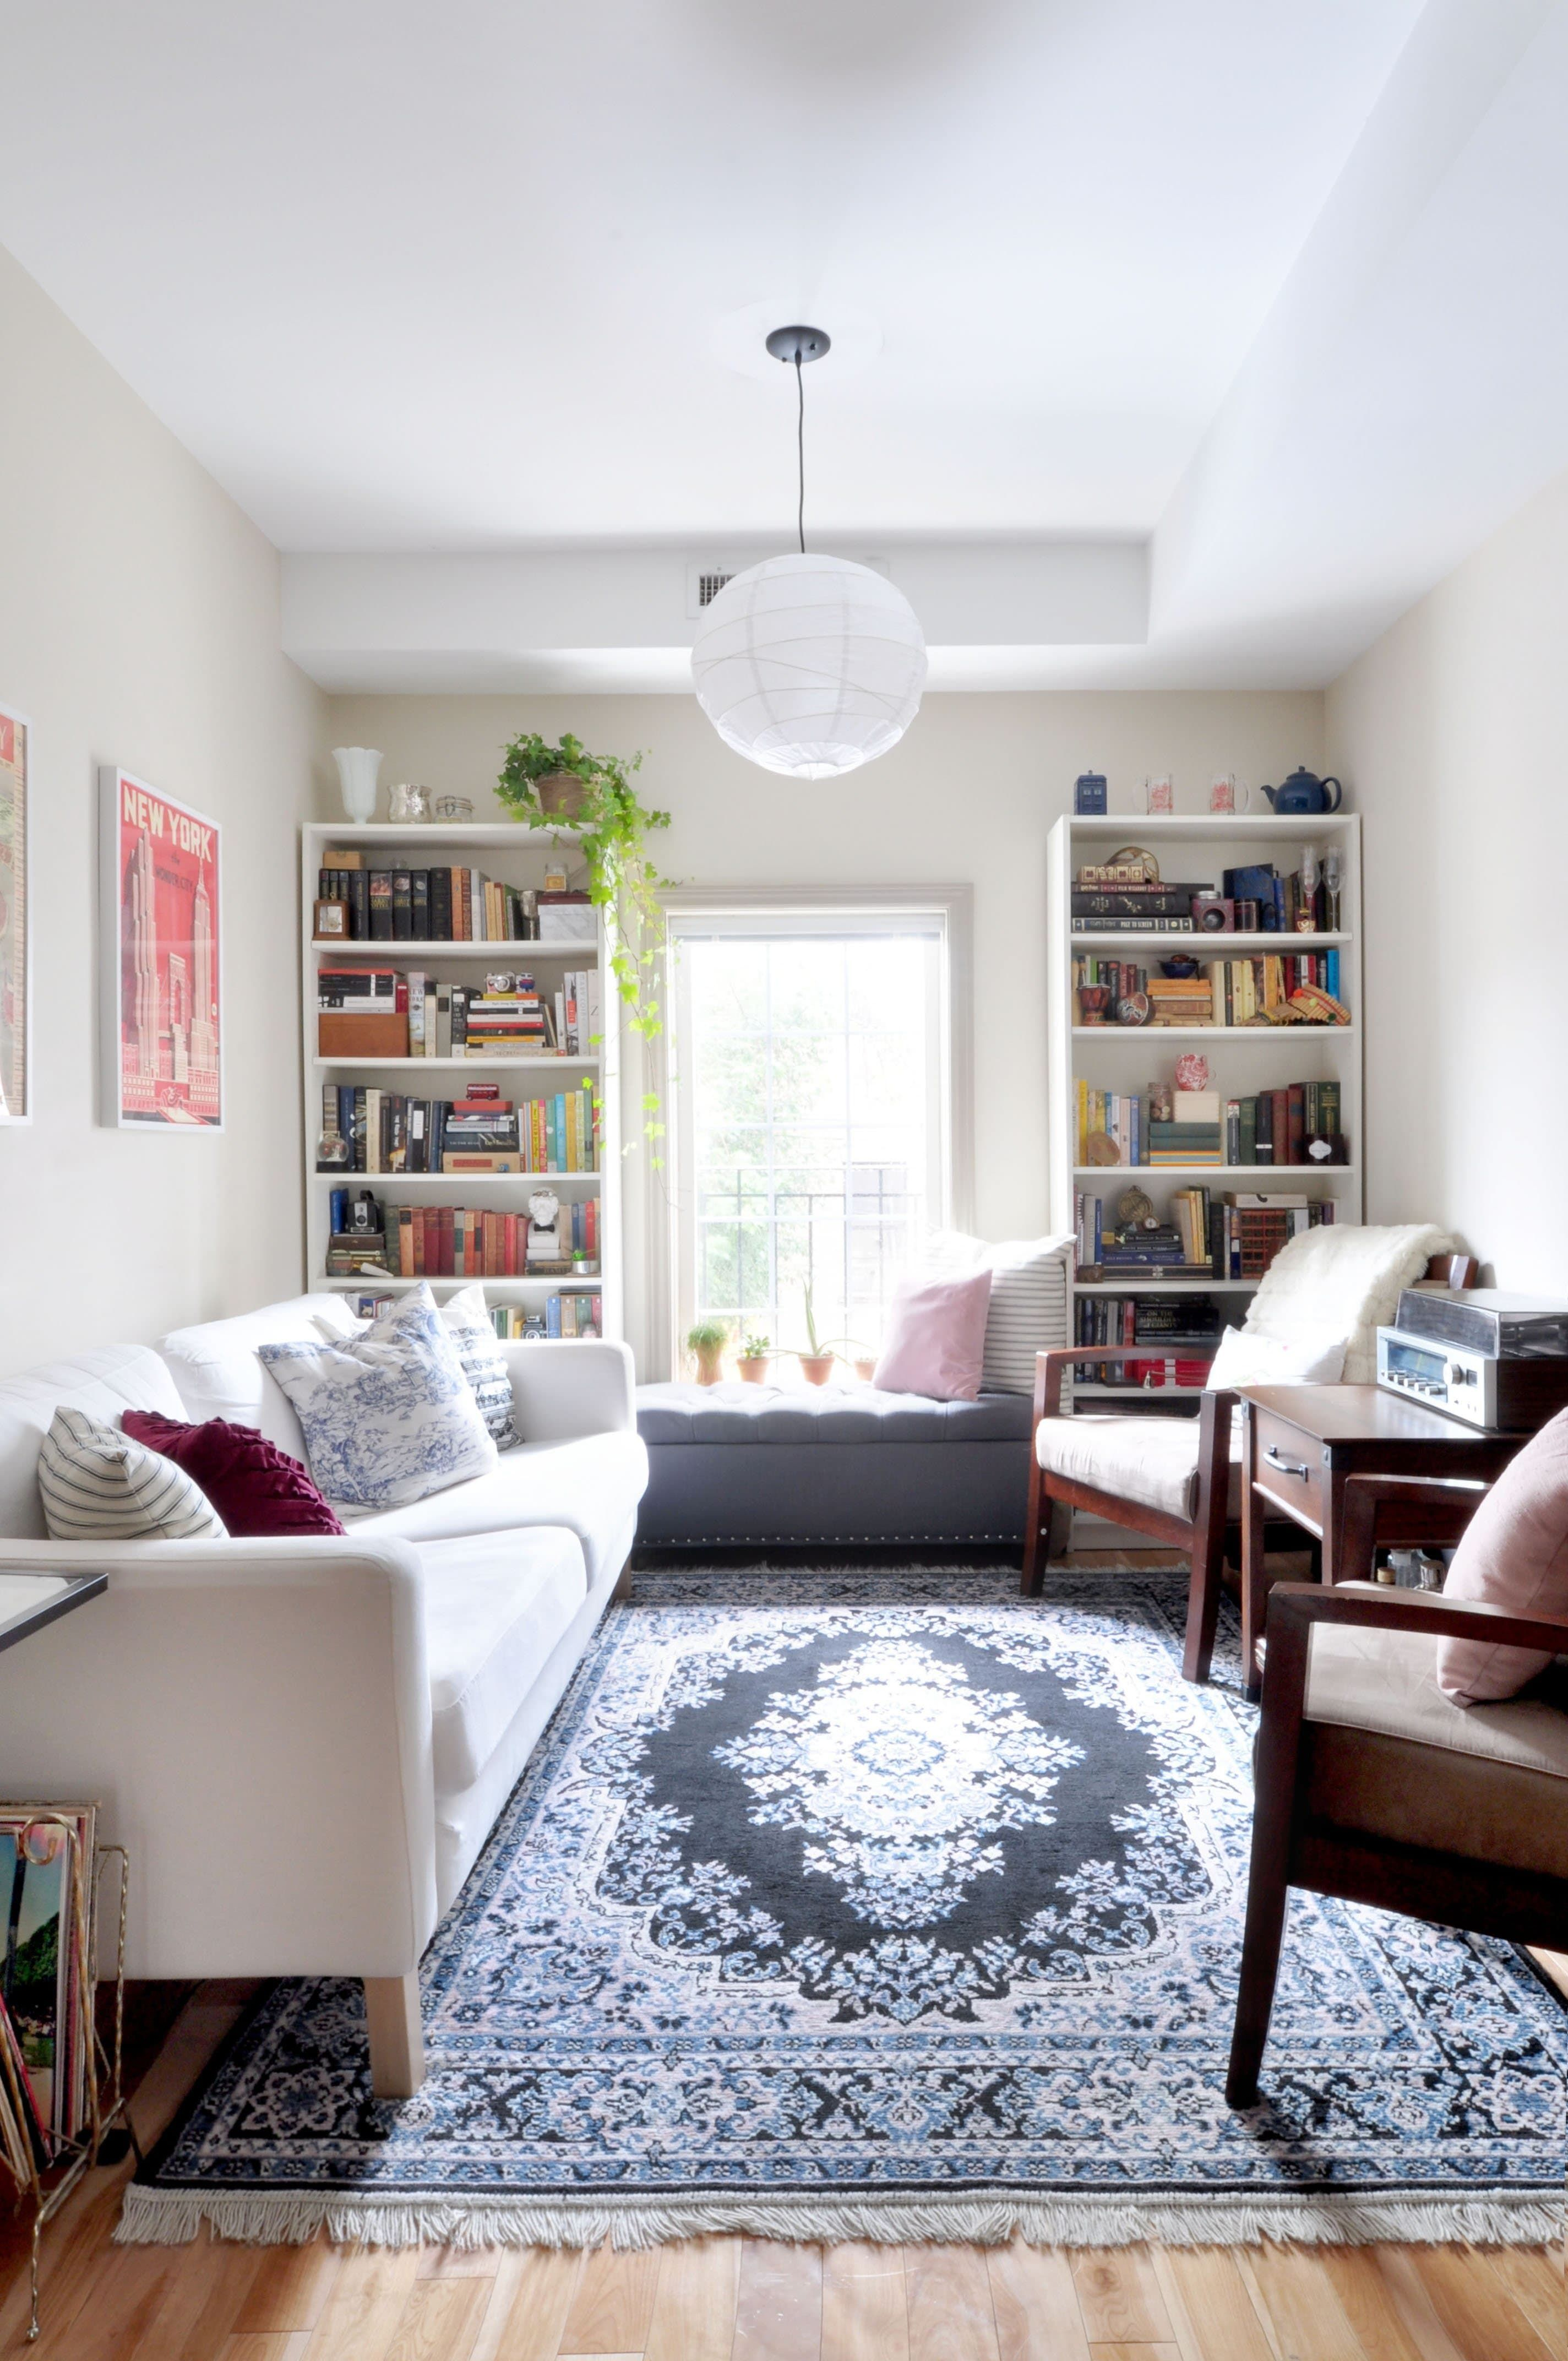 House Tour: 3 College Students Share a Cozy Apartment | Pinterest ...